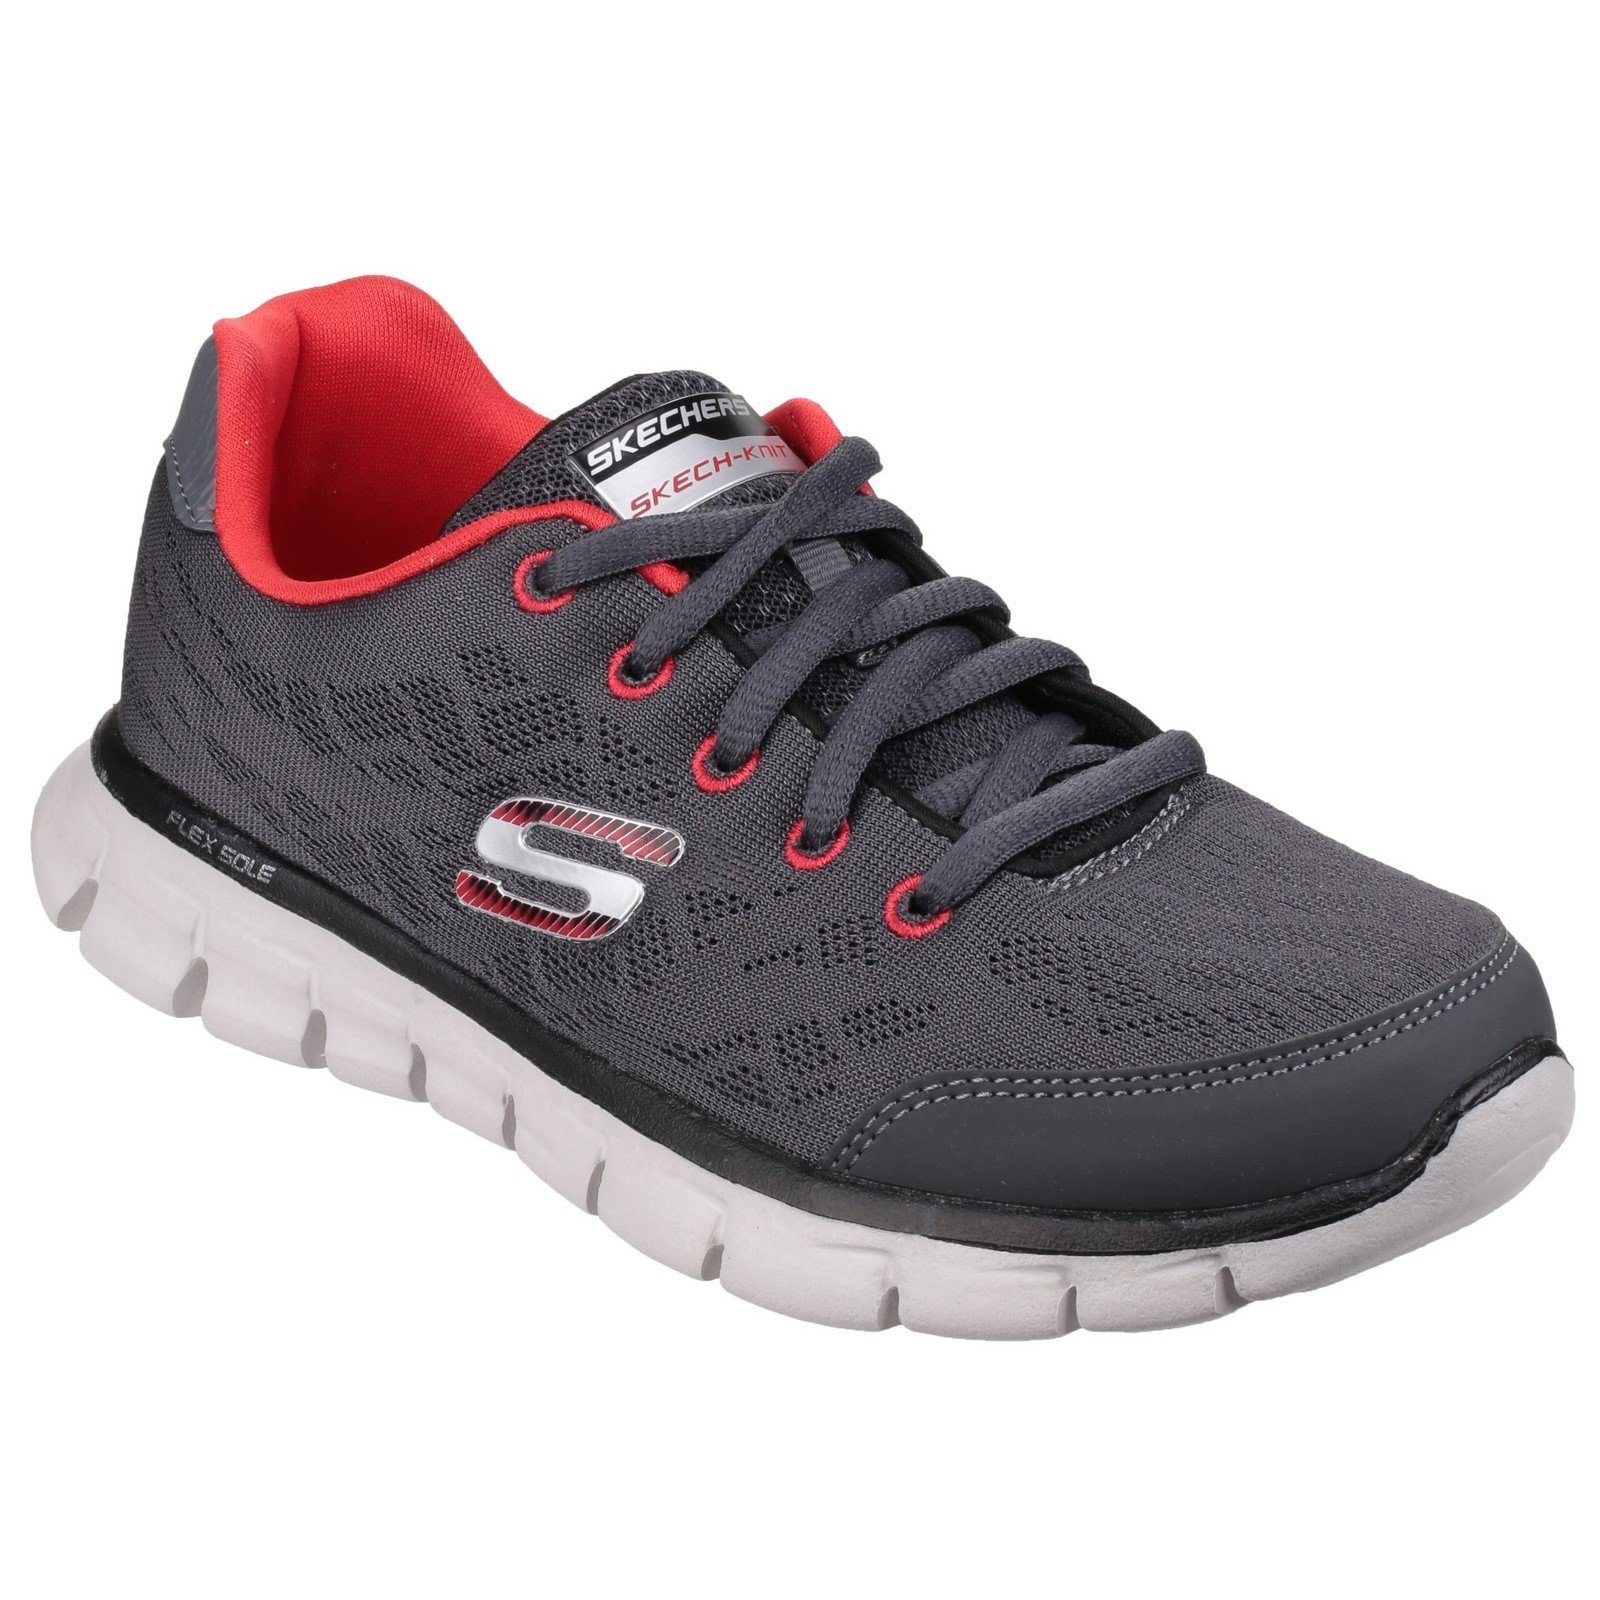 Skechers Kid's Synergy Fine Tune Lace up Trainer Multicolor 23918 - Grey/Red 2